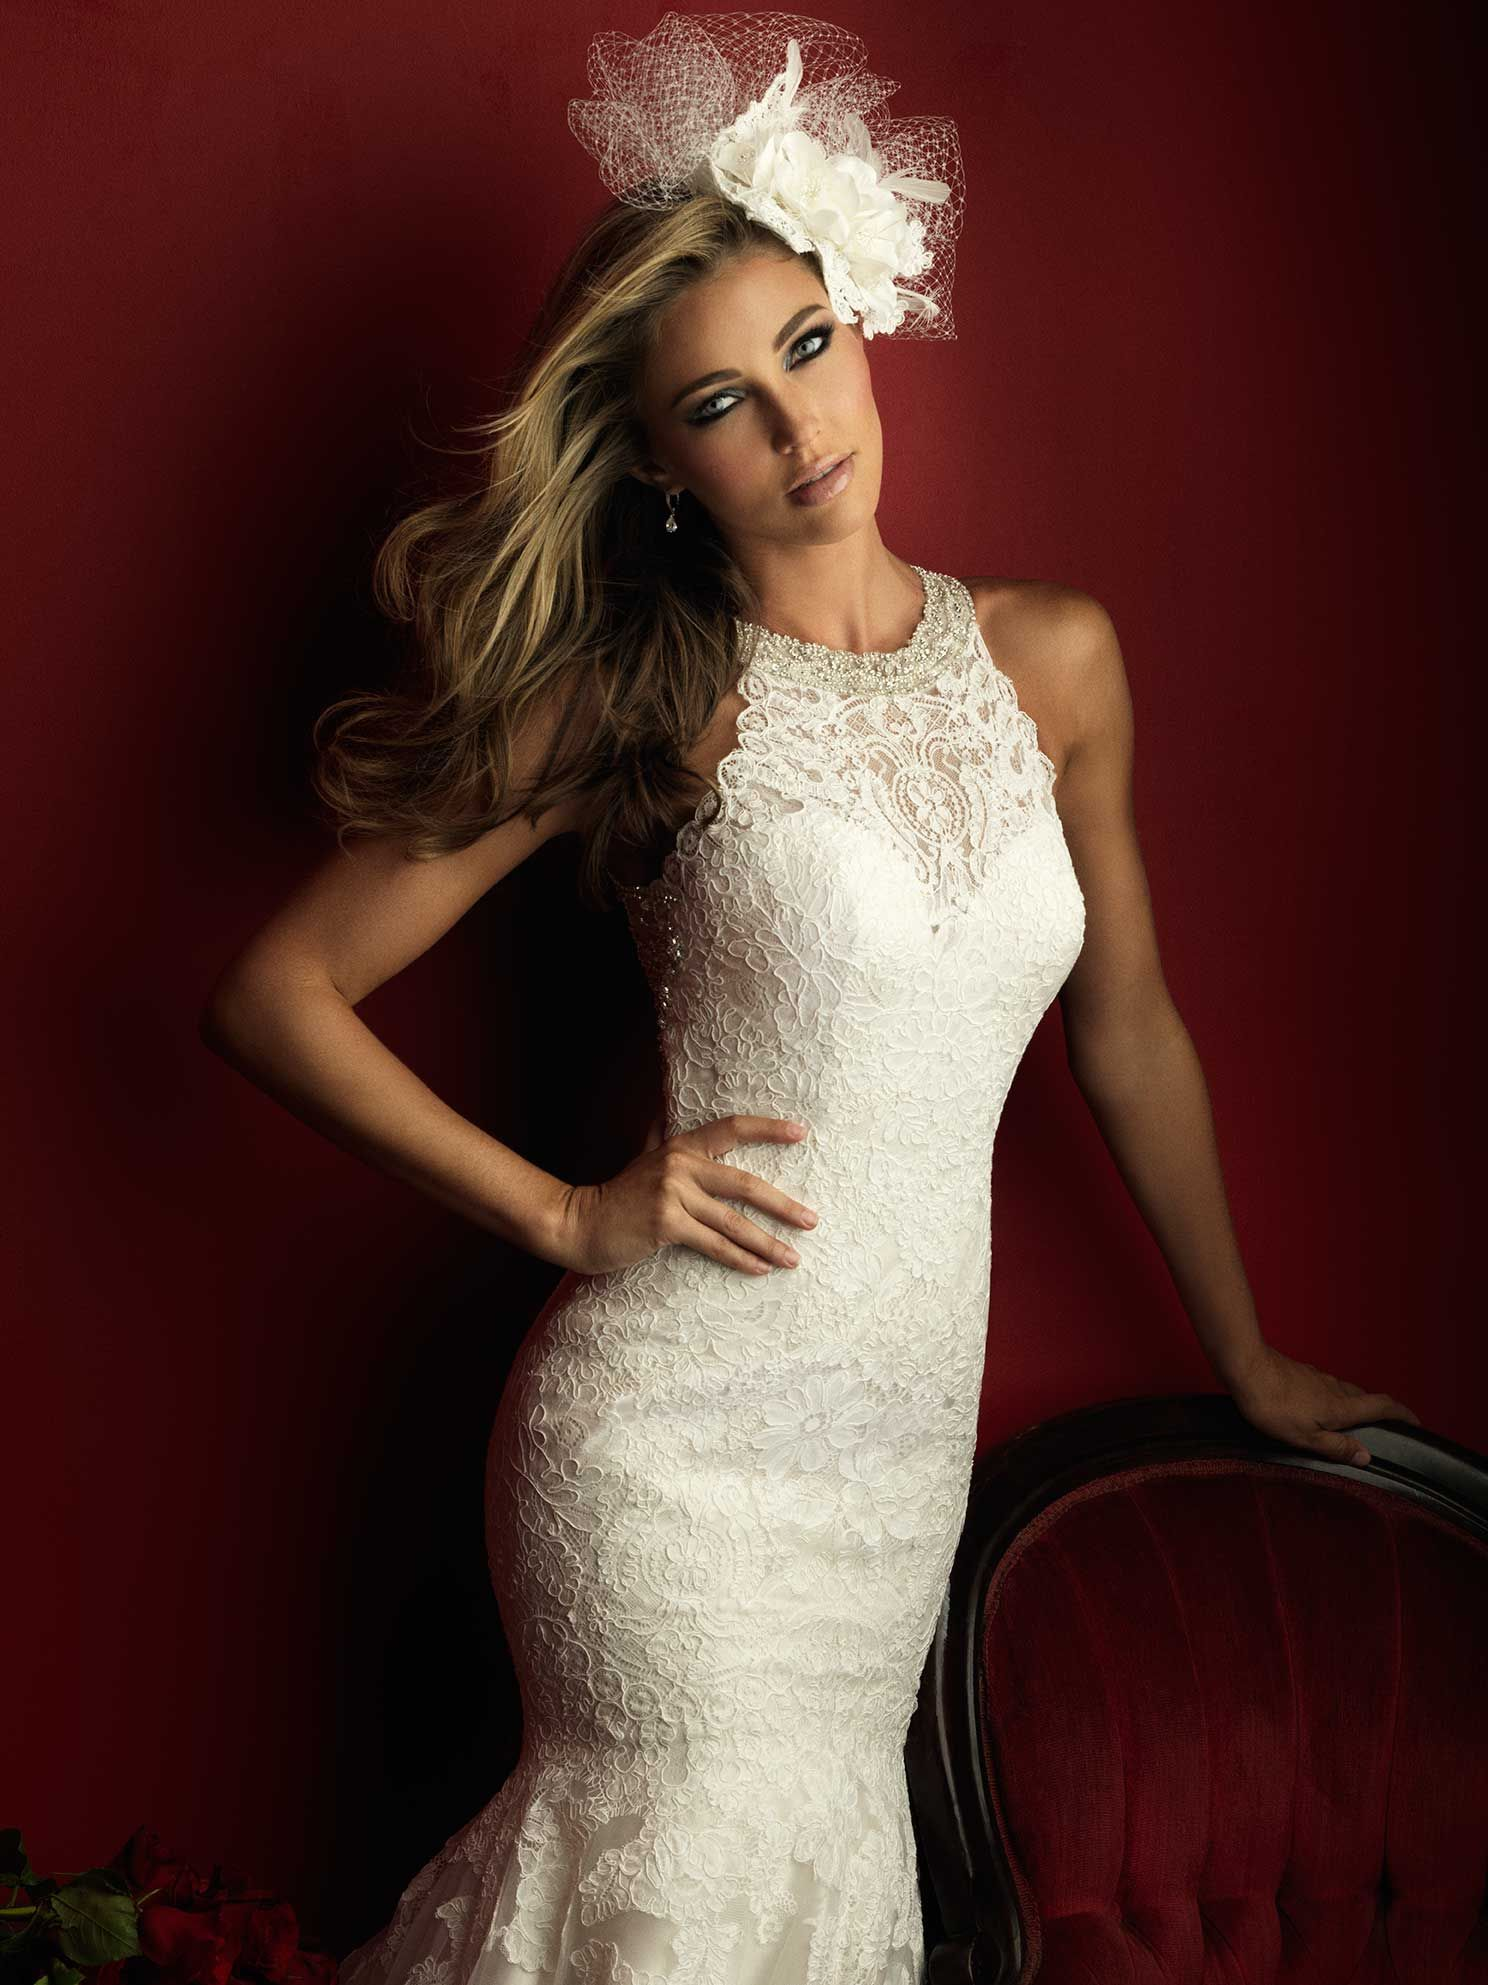 View the allure couture collection at bella sera bridal view the allure couture collection at bella sera bridal occasion junglespirit Choice Image